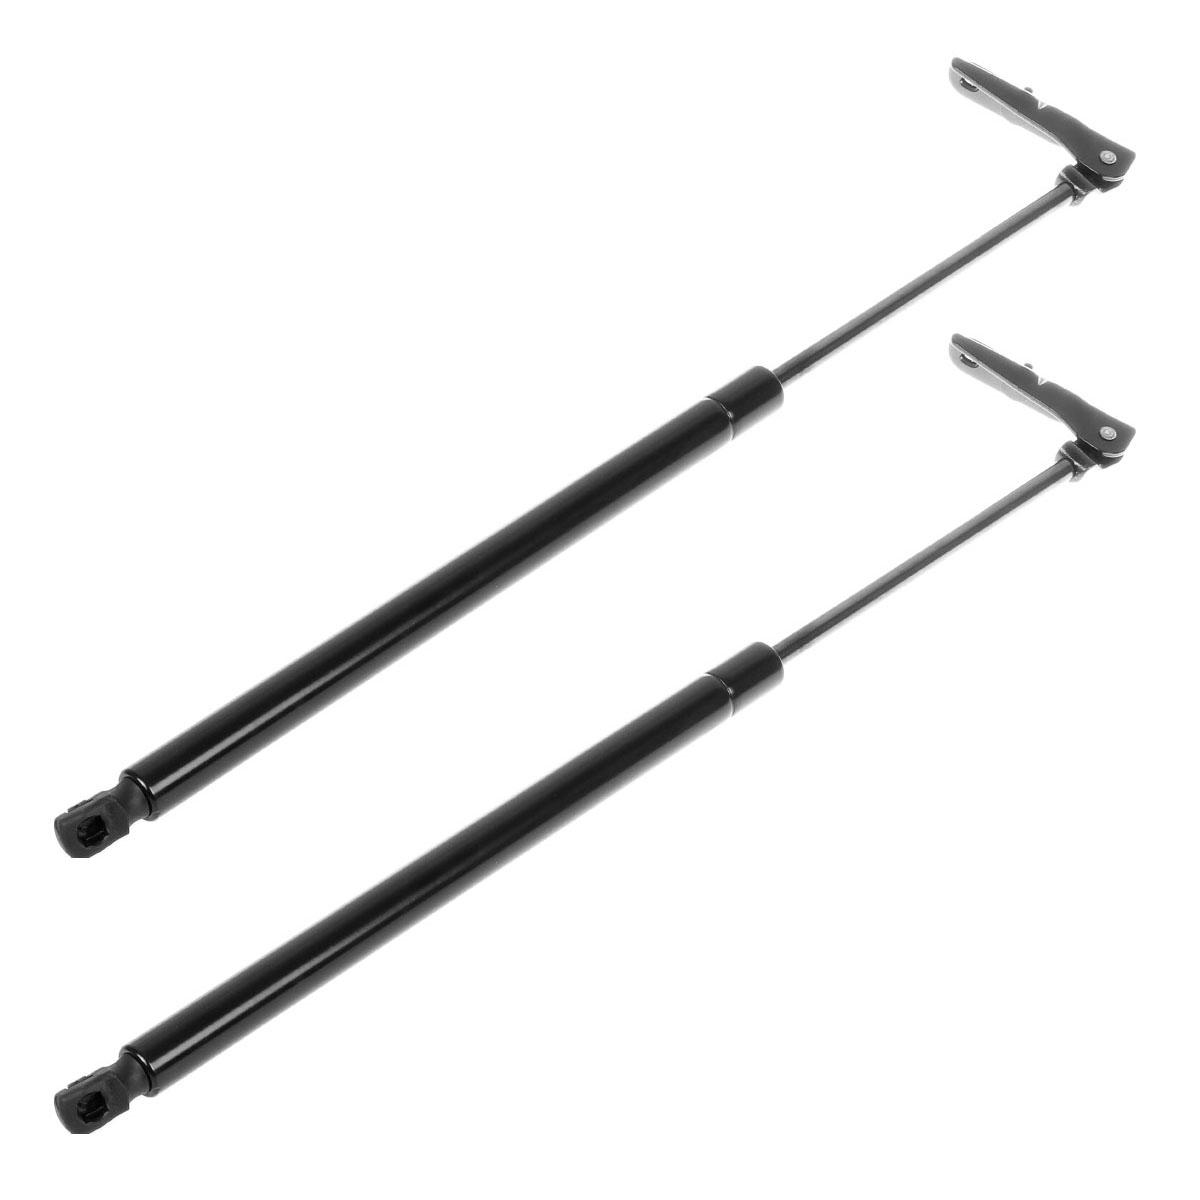 Changing Front Shocks For Toyota Celica 1994 99 St20x: Qty 2 4955L 4955R Hatch Liftgate Lift Supports Struts Fits